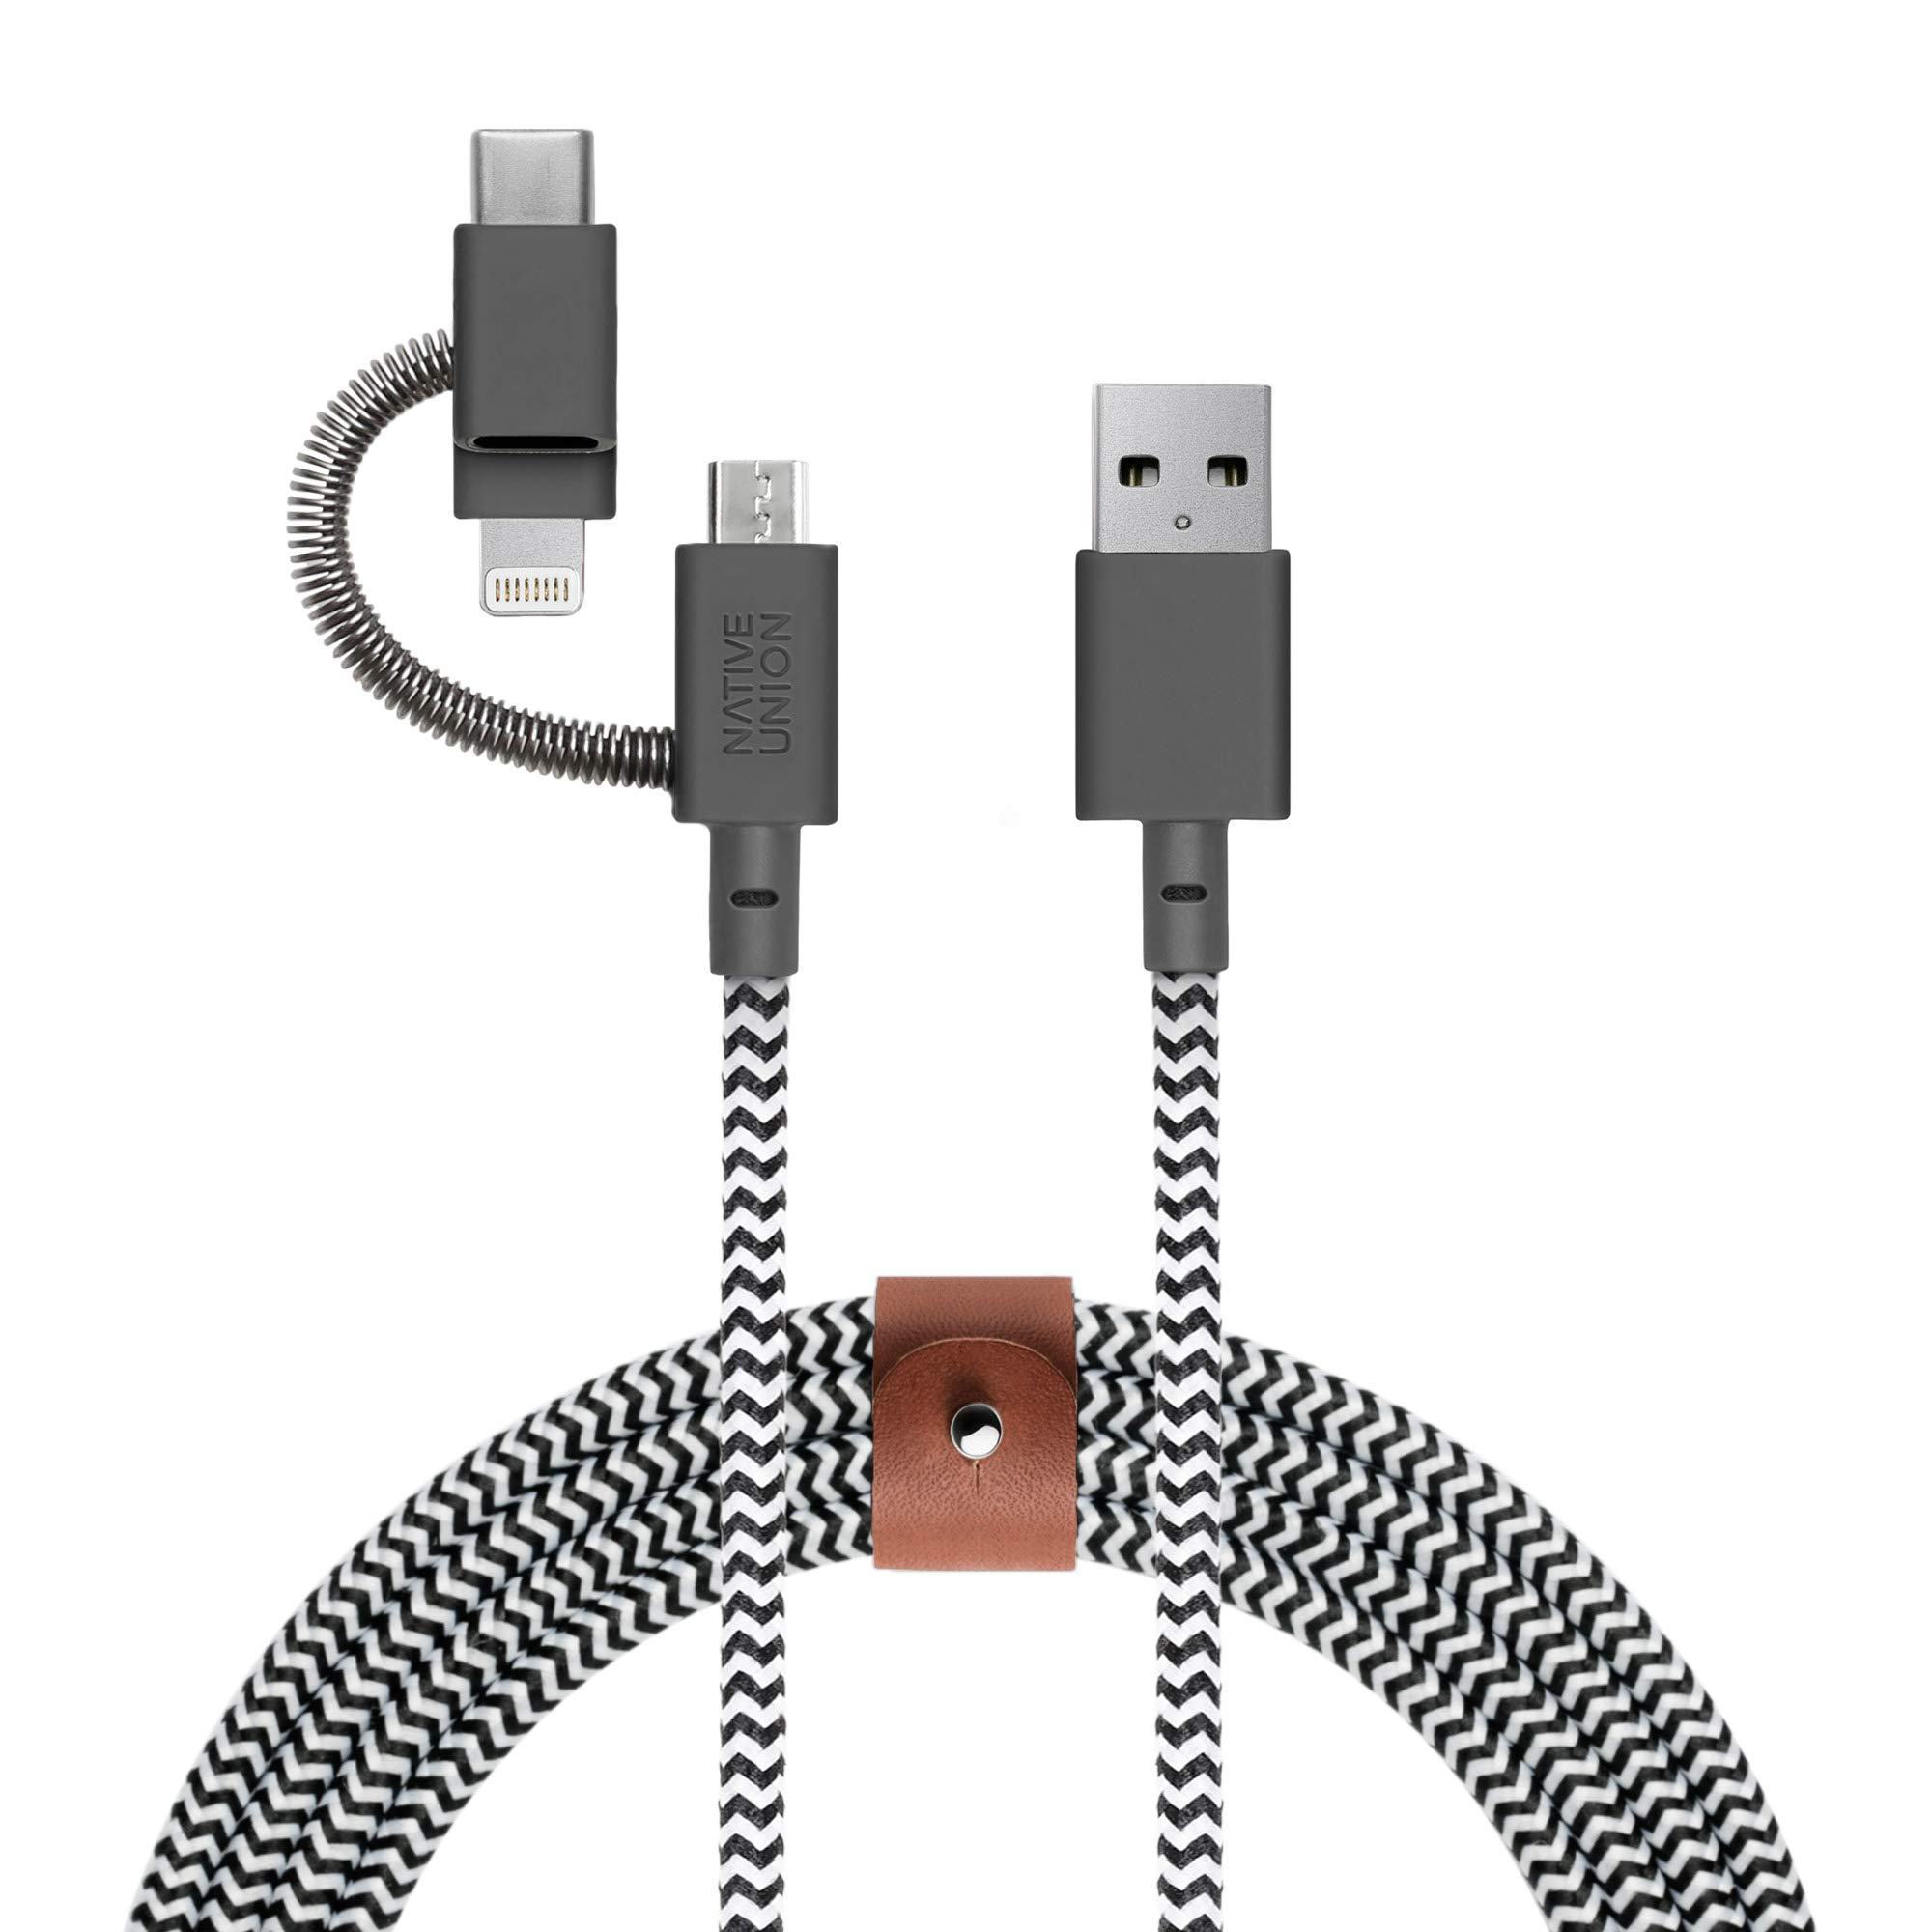 Native Union Belt Cable Universal - 6.5ft Ultra-Strong Reinforced [Apple MFi Certified] Durable Charging Cable with 3-in-1 Adaptor for Lightning, USB-C and Micro-USB Devices (Zebra) by Native Union